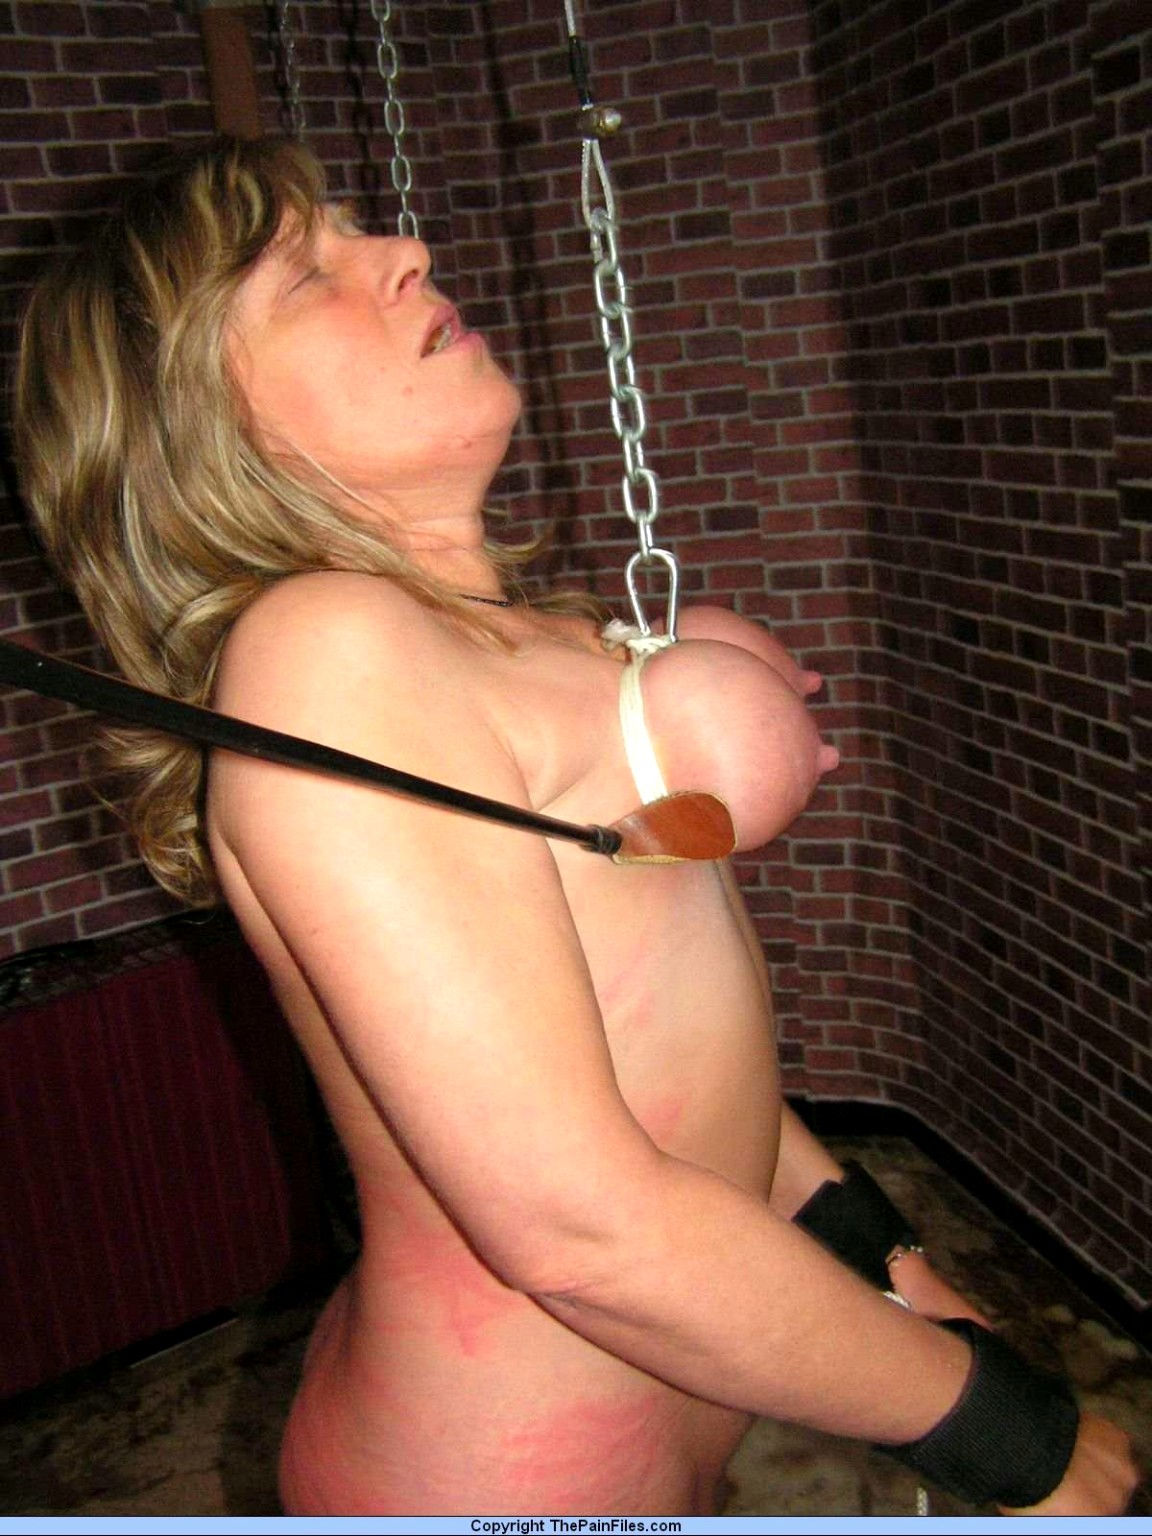 Babe Today The Pain Files Sophie B Full Breast Whipping -3592